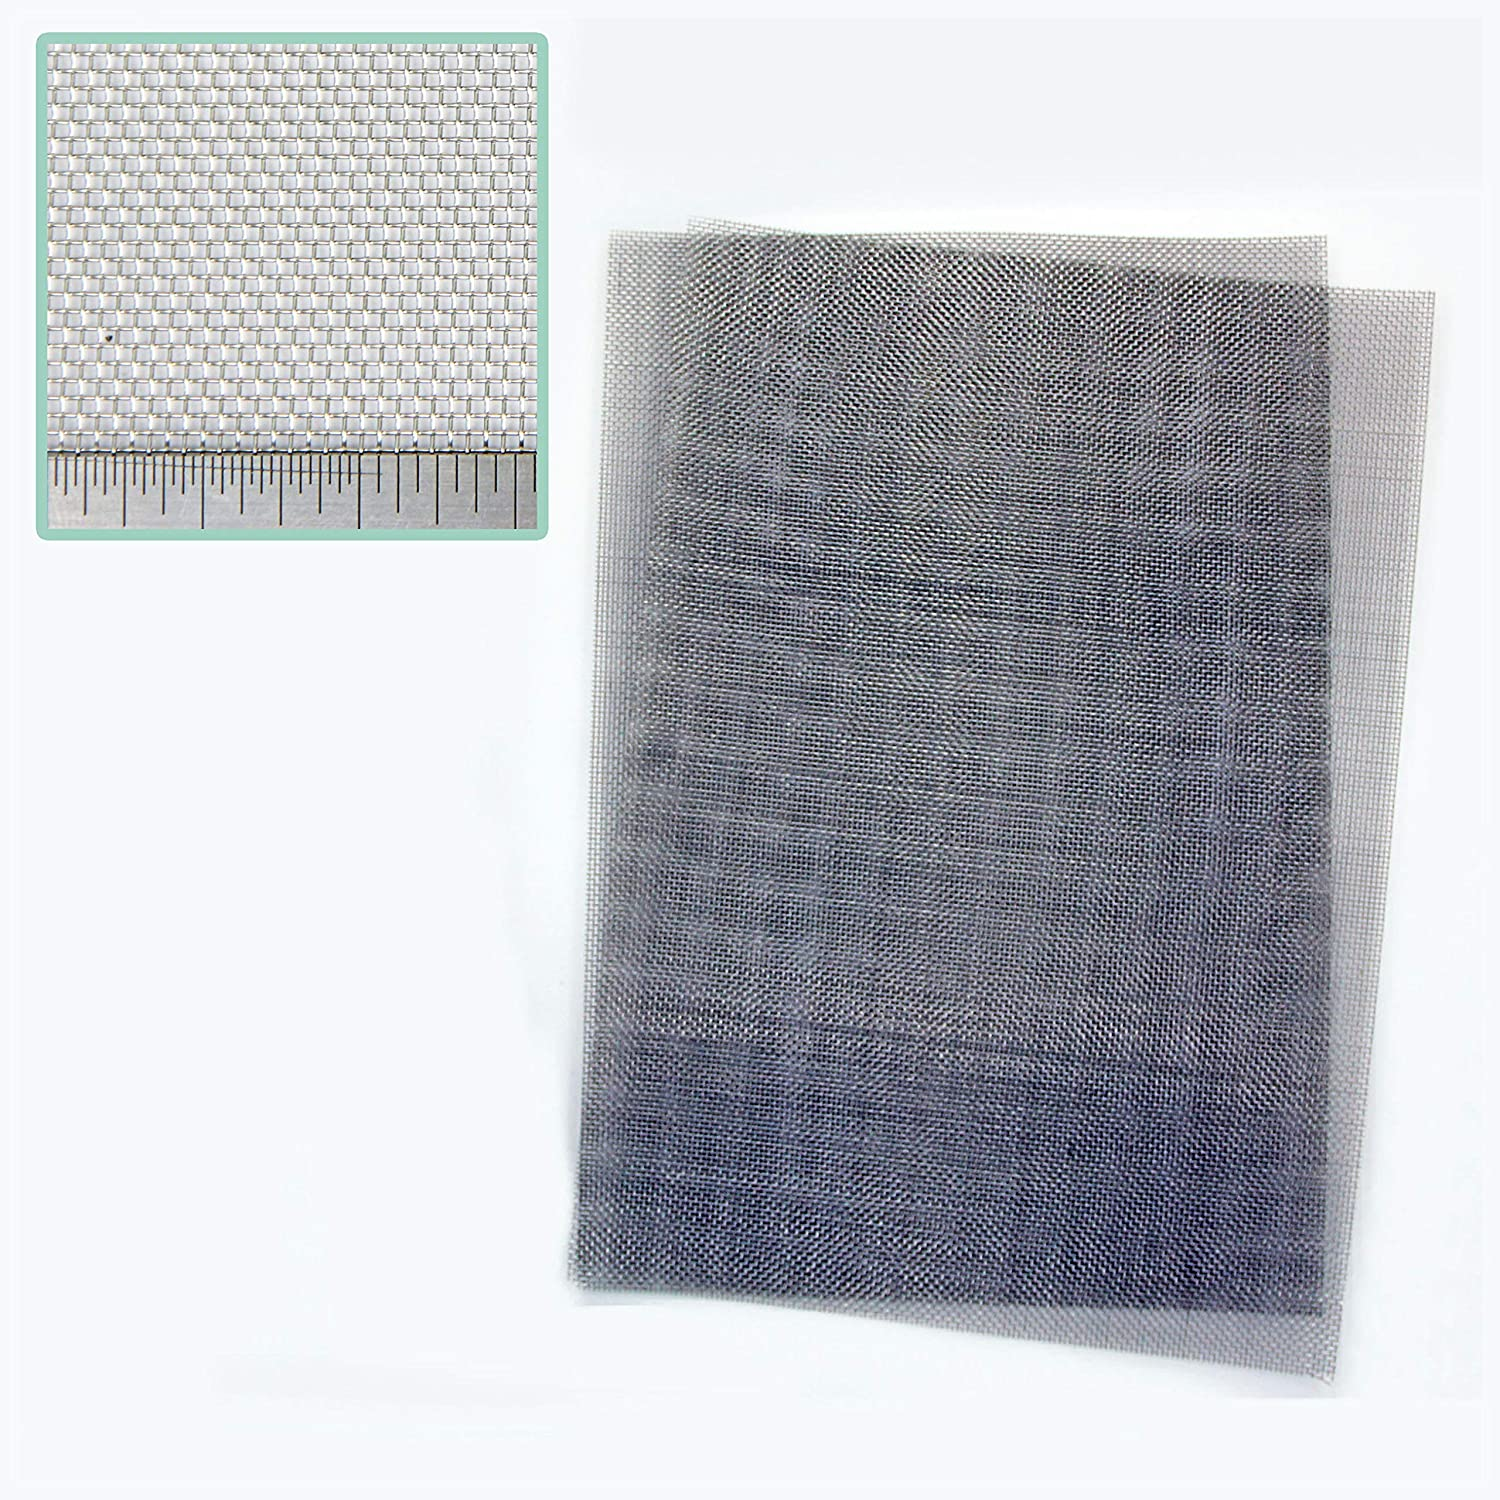 Pack of 2 - Stainless Steel Woven RODENT PROOF Mesh - 1mm Hole - A4 (210 x 300mm) Great For Airbricks The Mesh Company